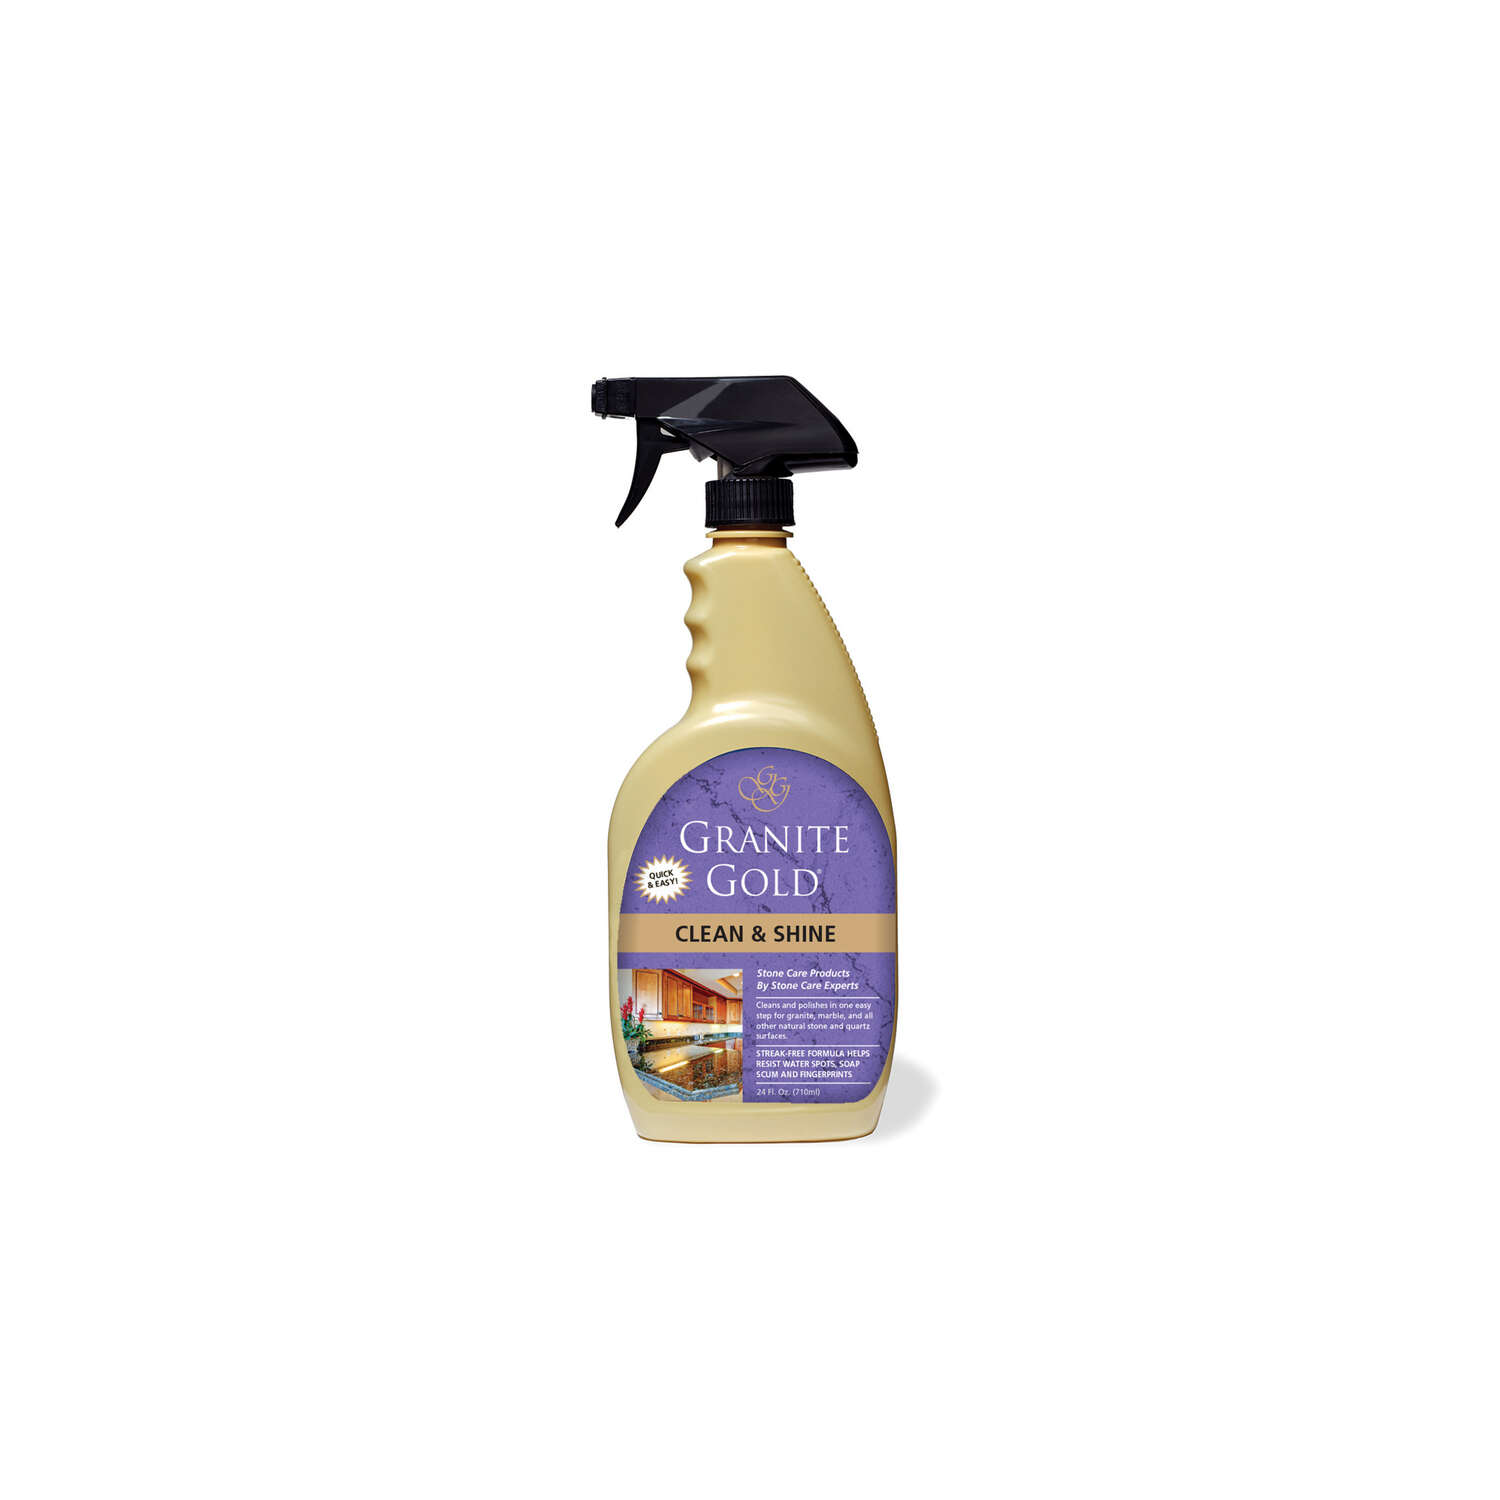 Granite Gold  Citrus Scent Granite Cleaner and Polish  24 oz. Liquid